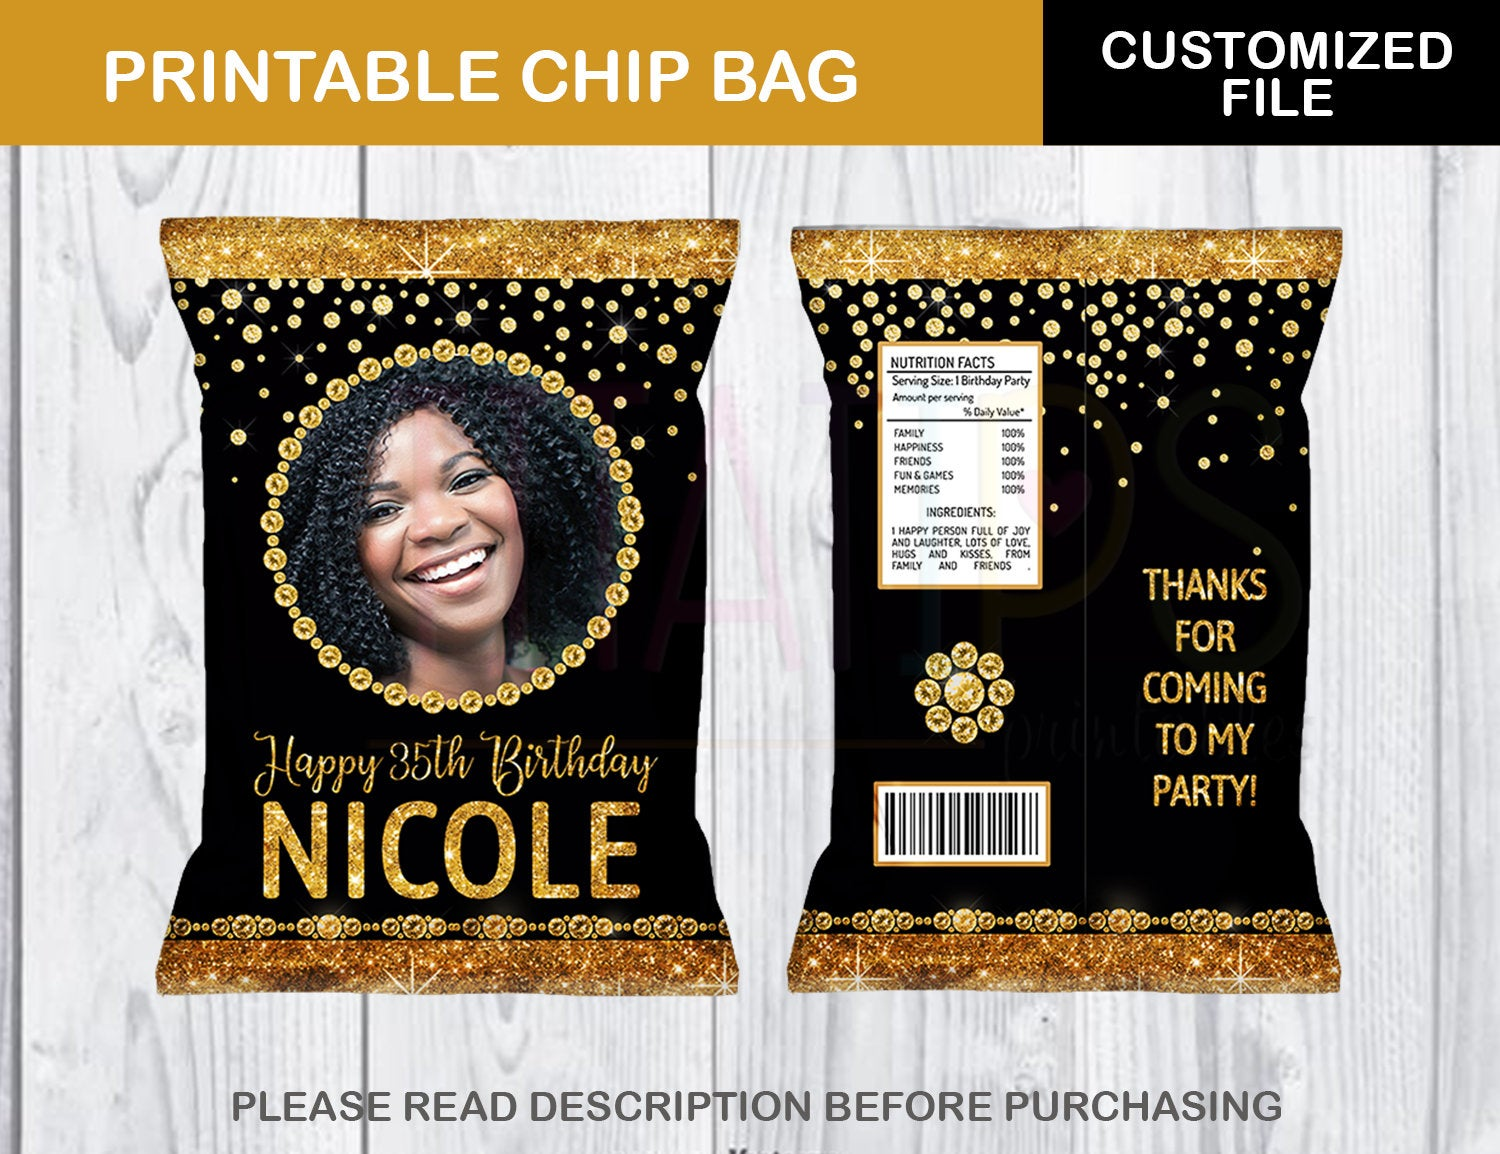 Customized Birthday Party Chip Bag, Personalized Adult Favor Bags, ANY AGE, Printable Goodies Bag, Glitter Diamond Favor Bag, Digital File - TitaTipsPrintables